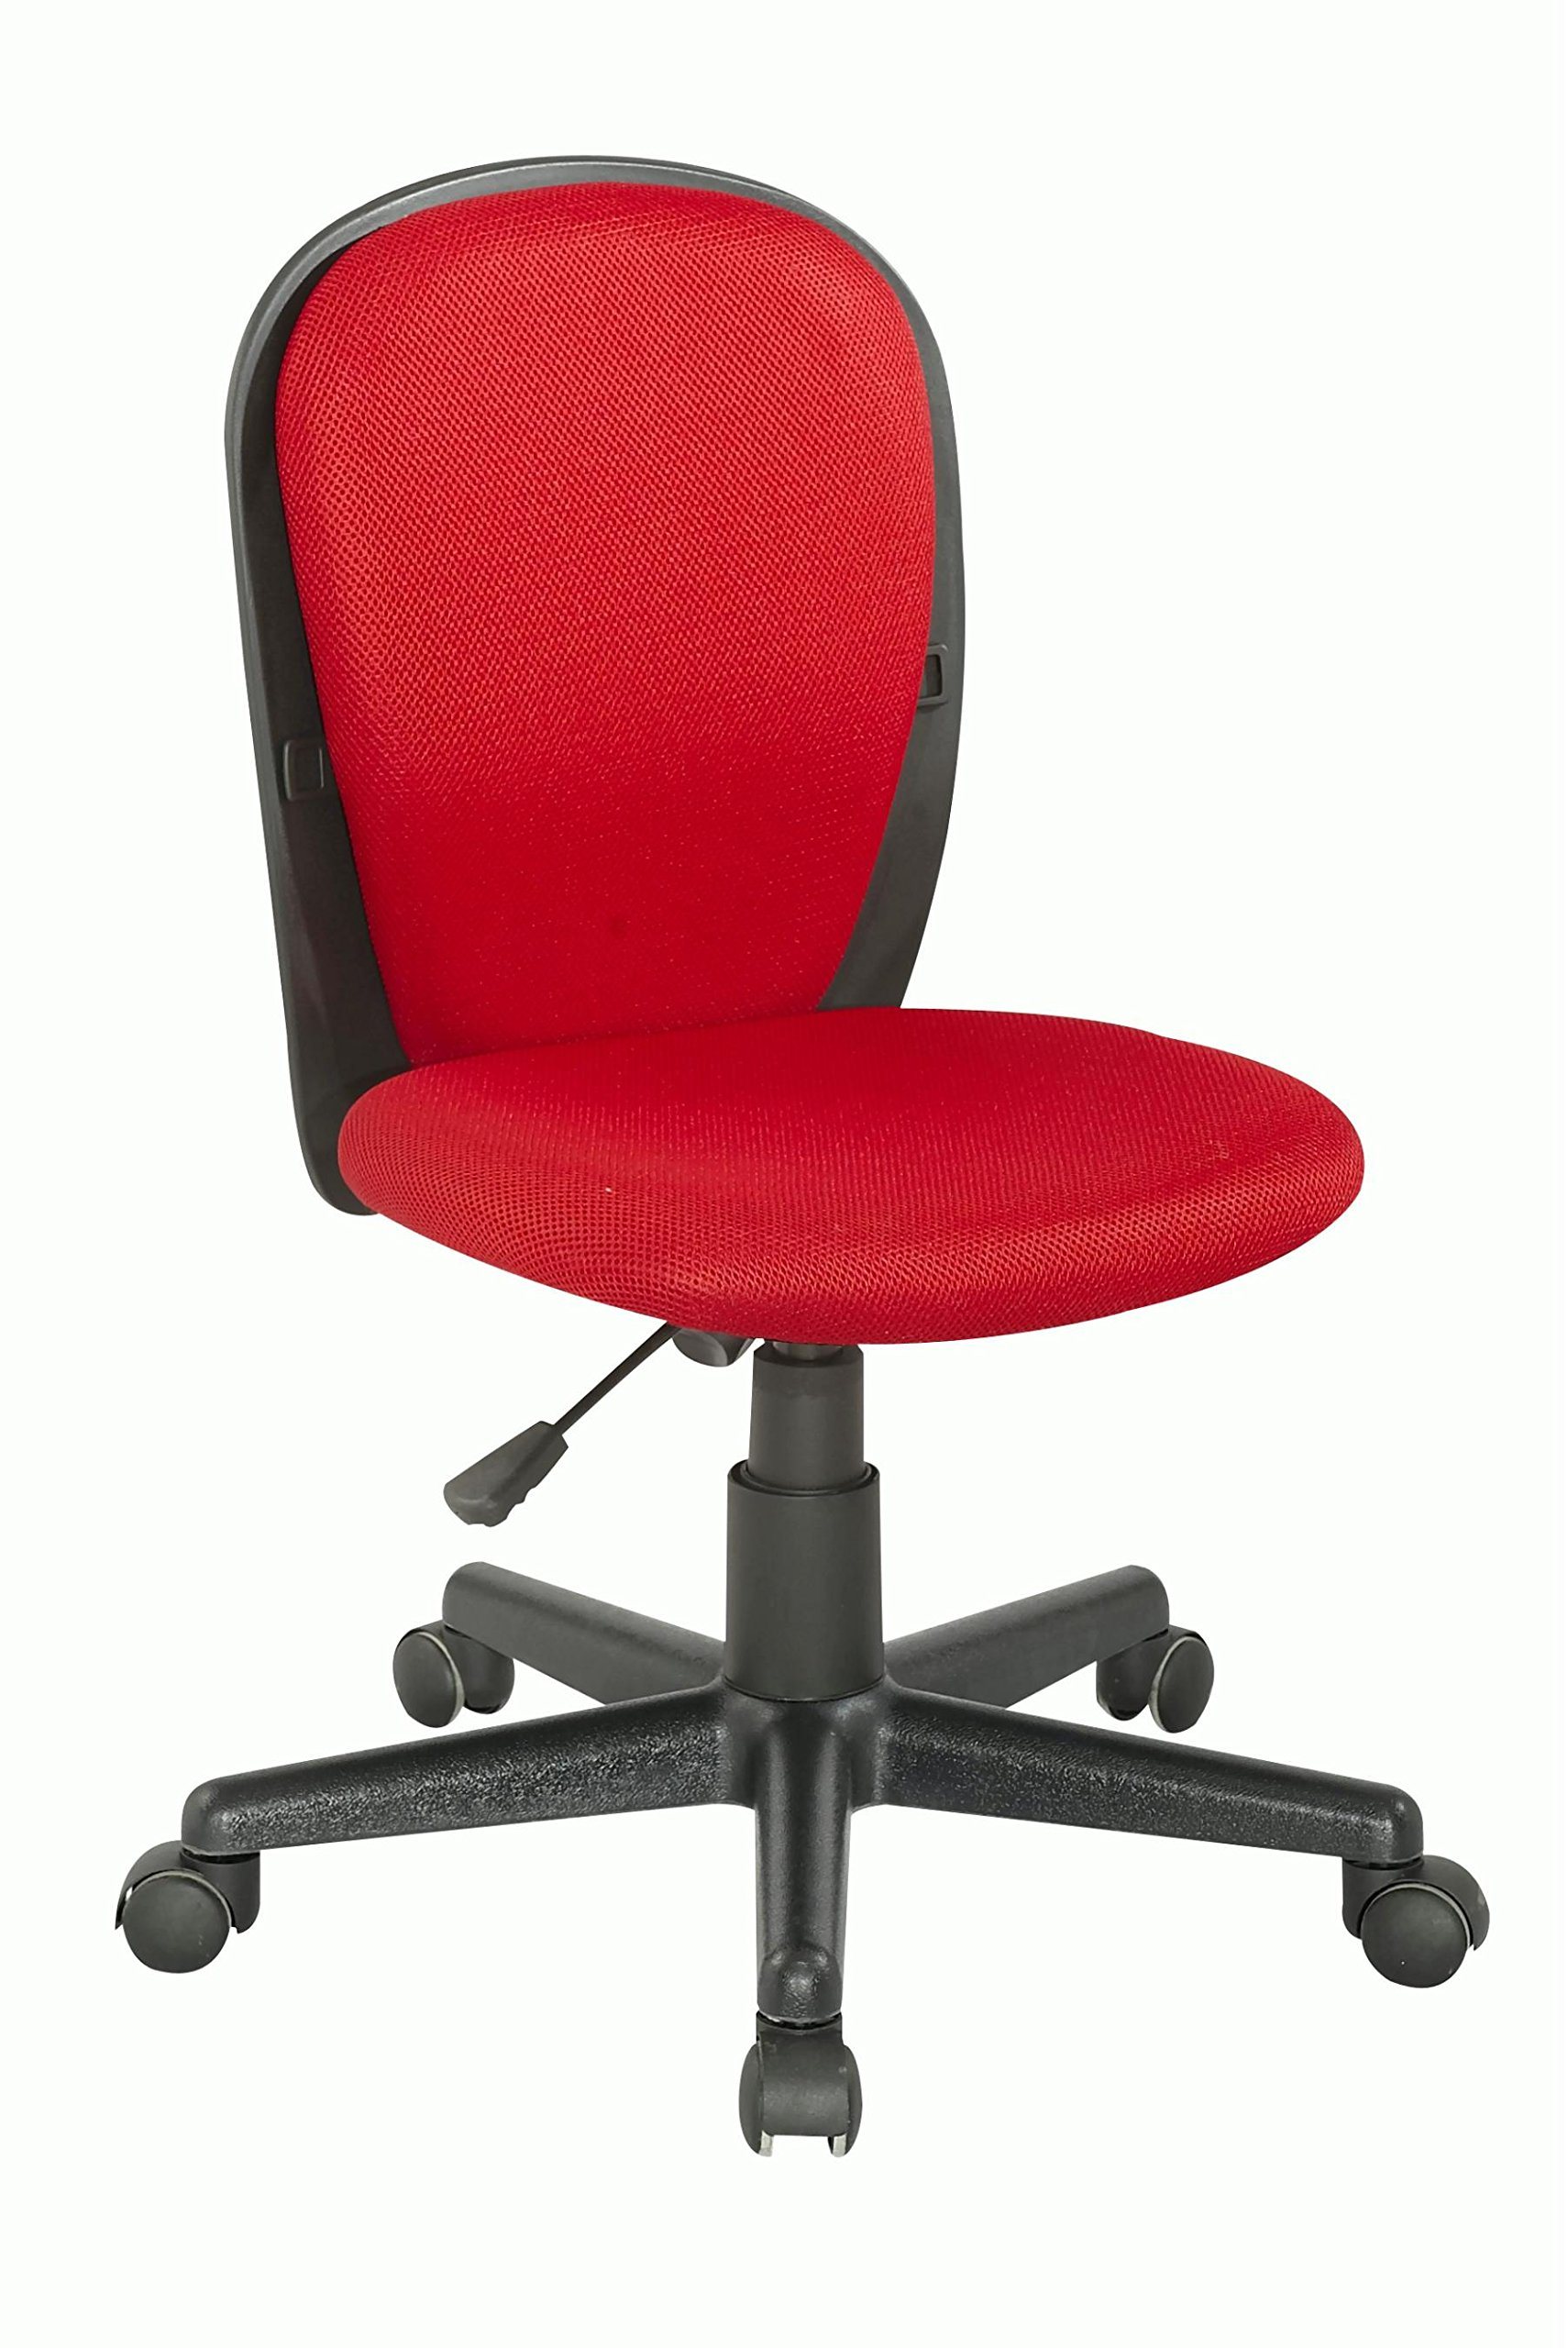 Chintaly Imports 4245-CCHRED Fabric Back and Seat Youth Desk Chair in Black,Red